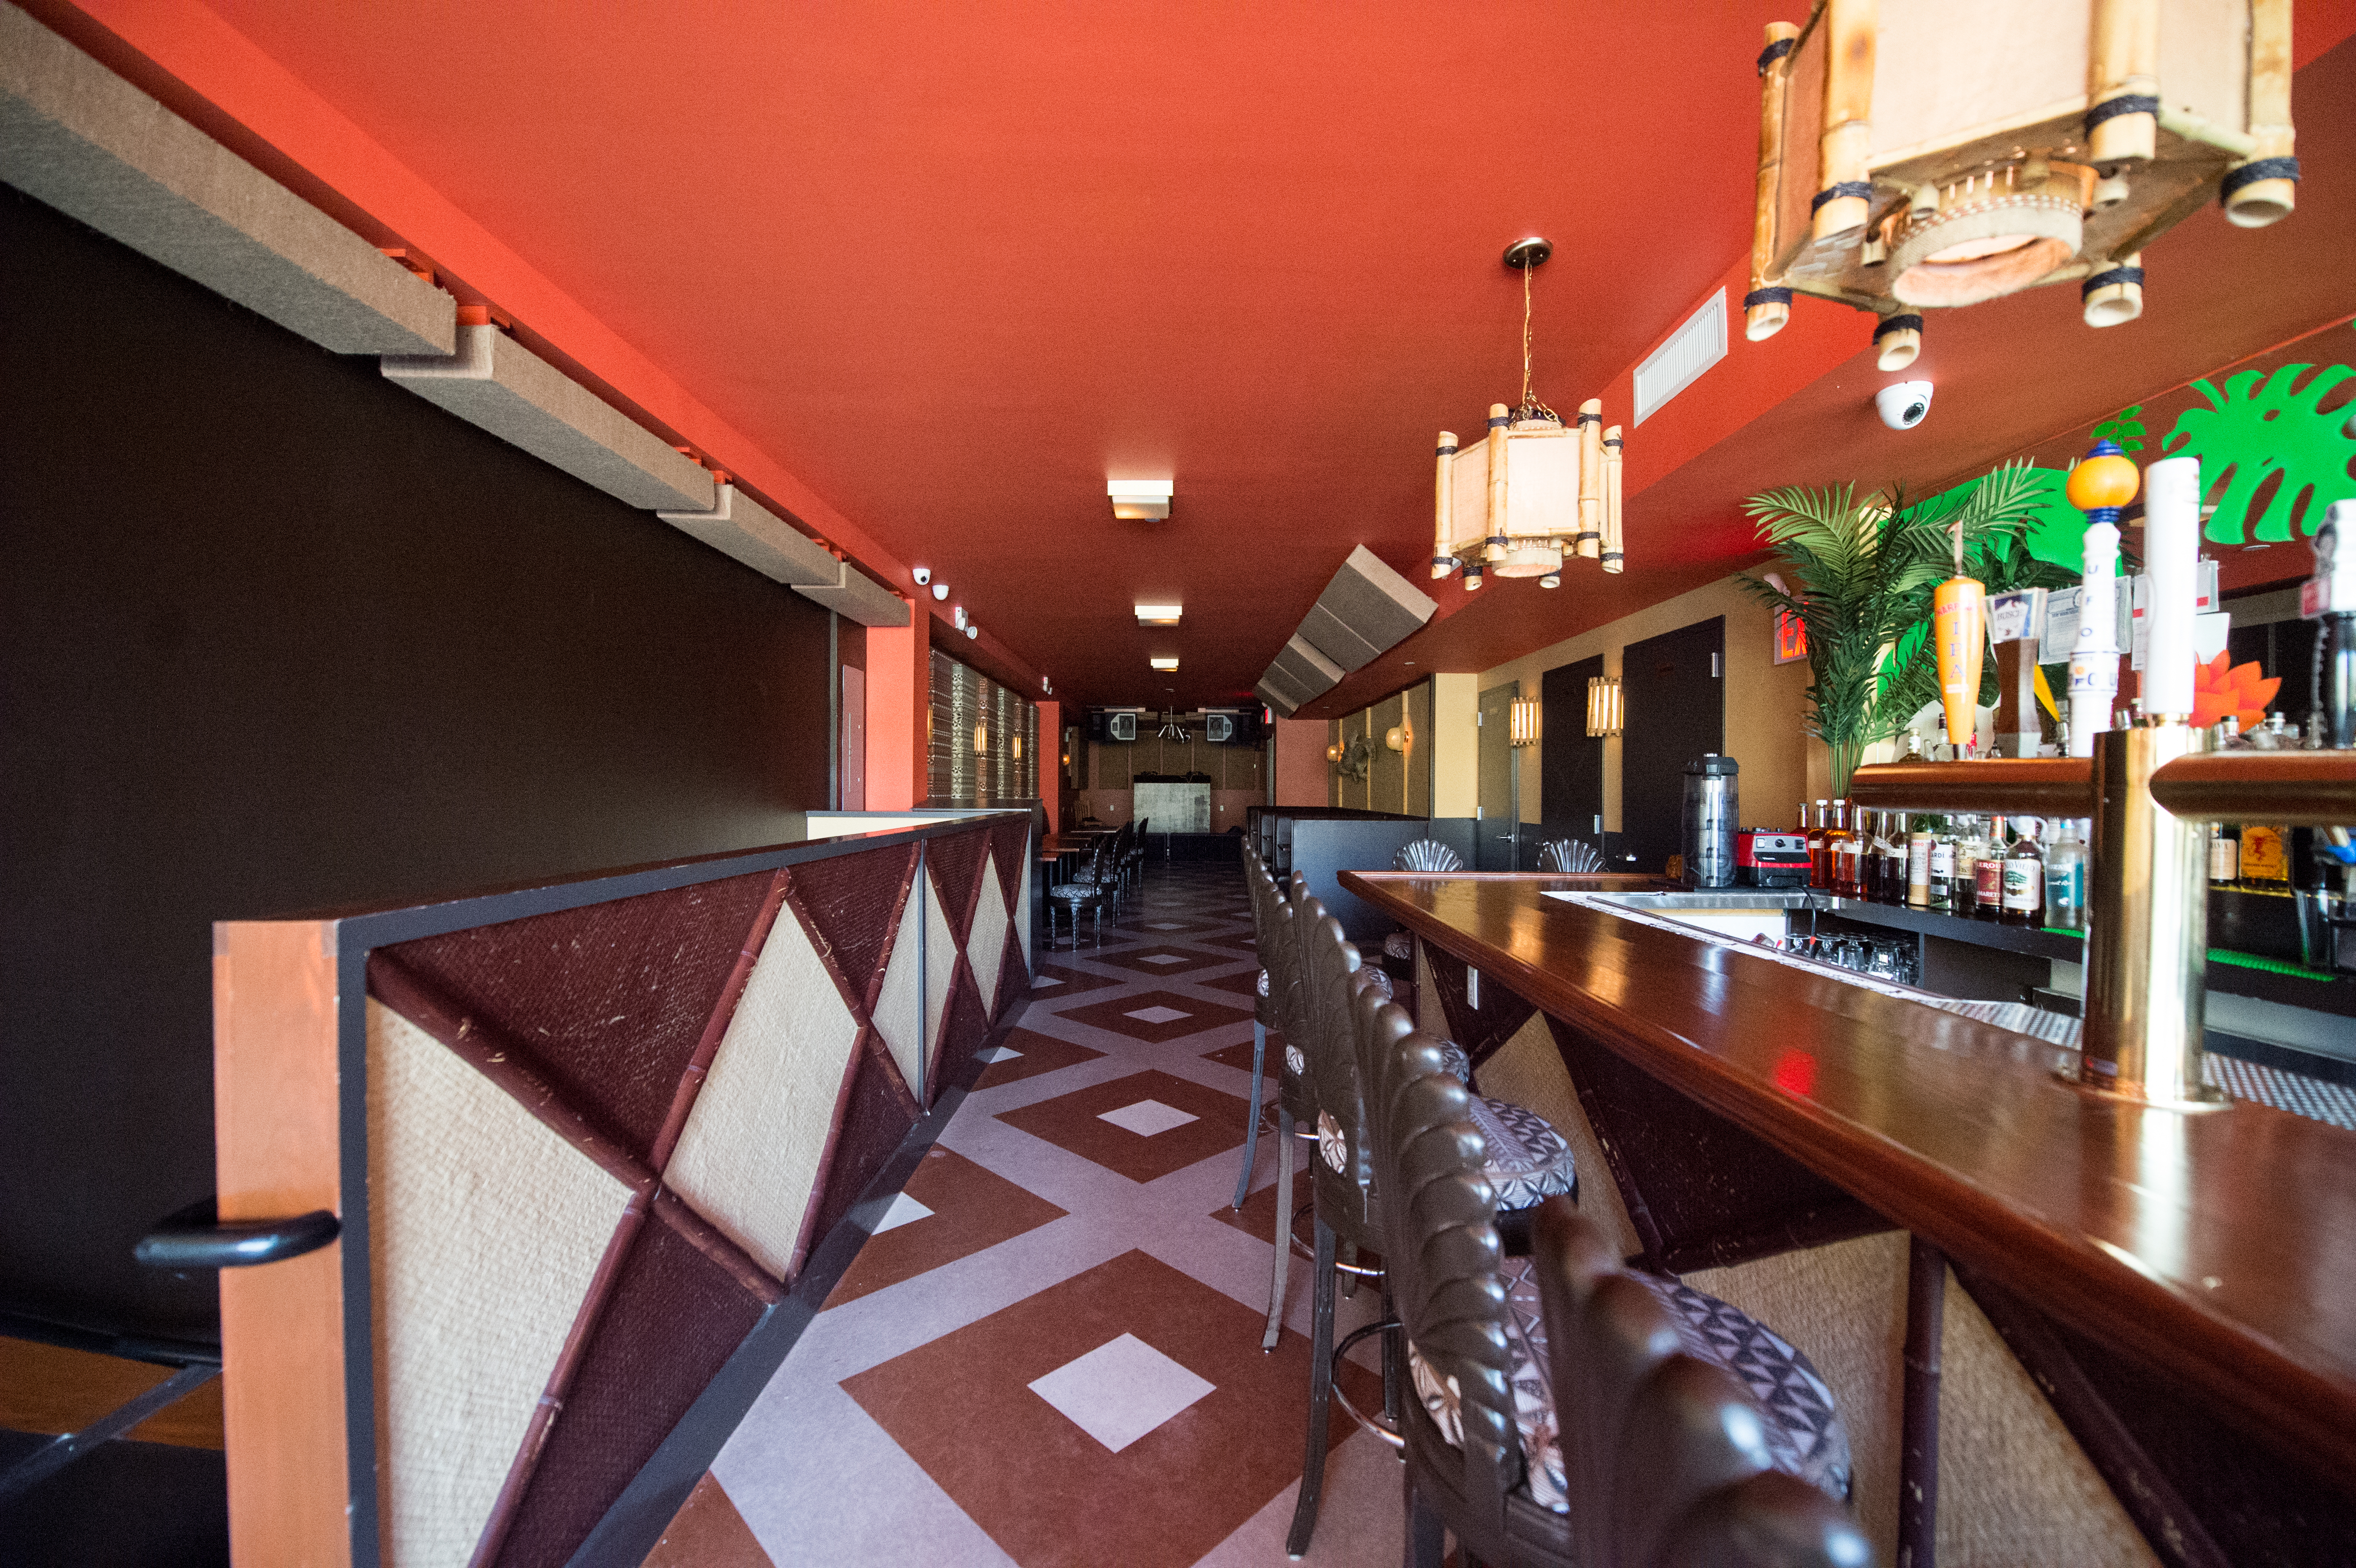 [The bar at Bushwick hot spot El Cortez.  Solid choice for an after work drink or dinner today, Tuesday, September 22.]